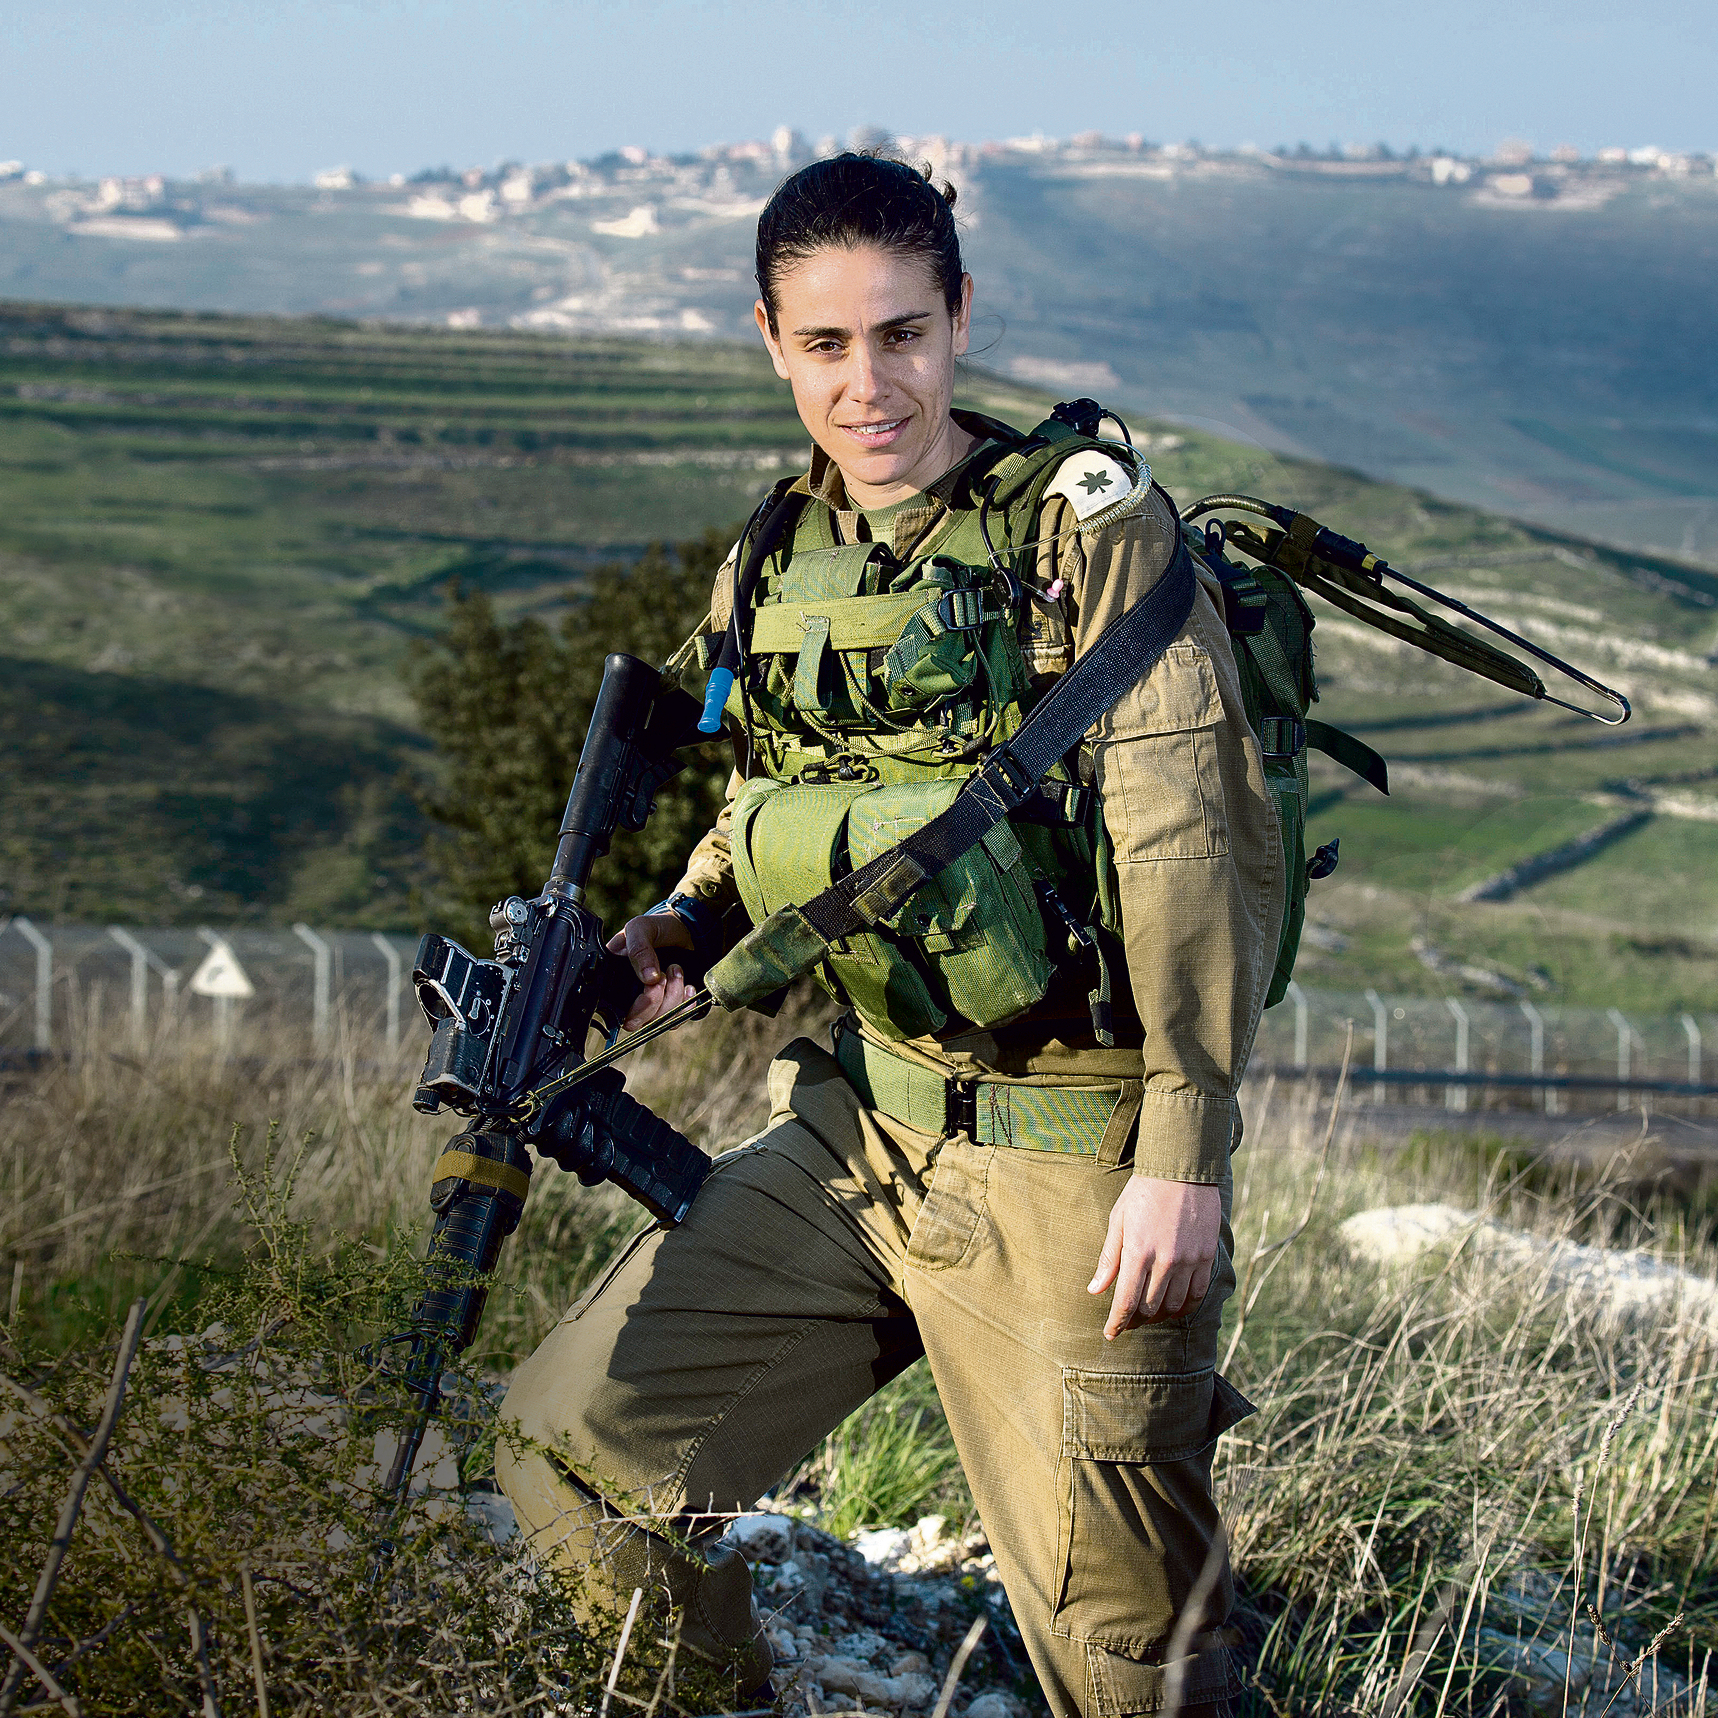 Maj. Dana Ben-Ezra (Photo: Efi Shrir)